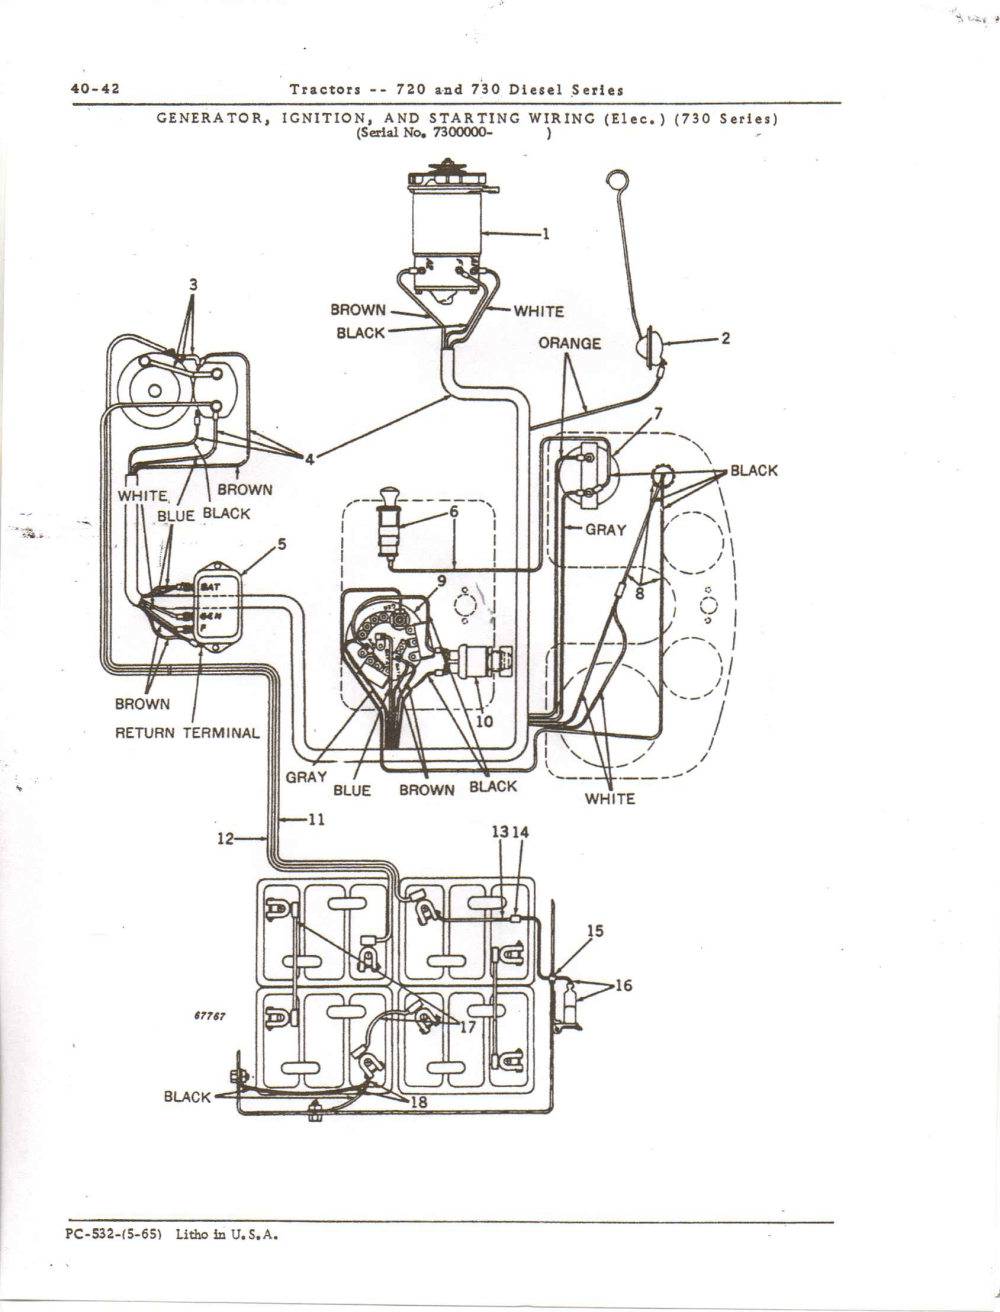 medium resolution of john deere 2755 tractor wiring diagram wiring schematic diagram john deere 2755 tractor wiring diagram wiring